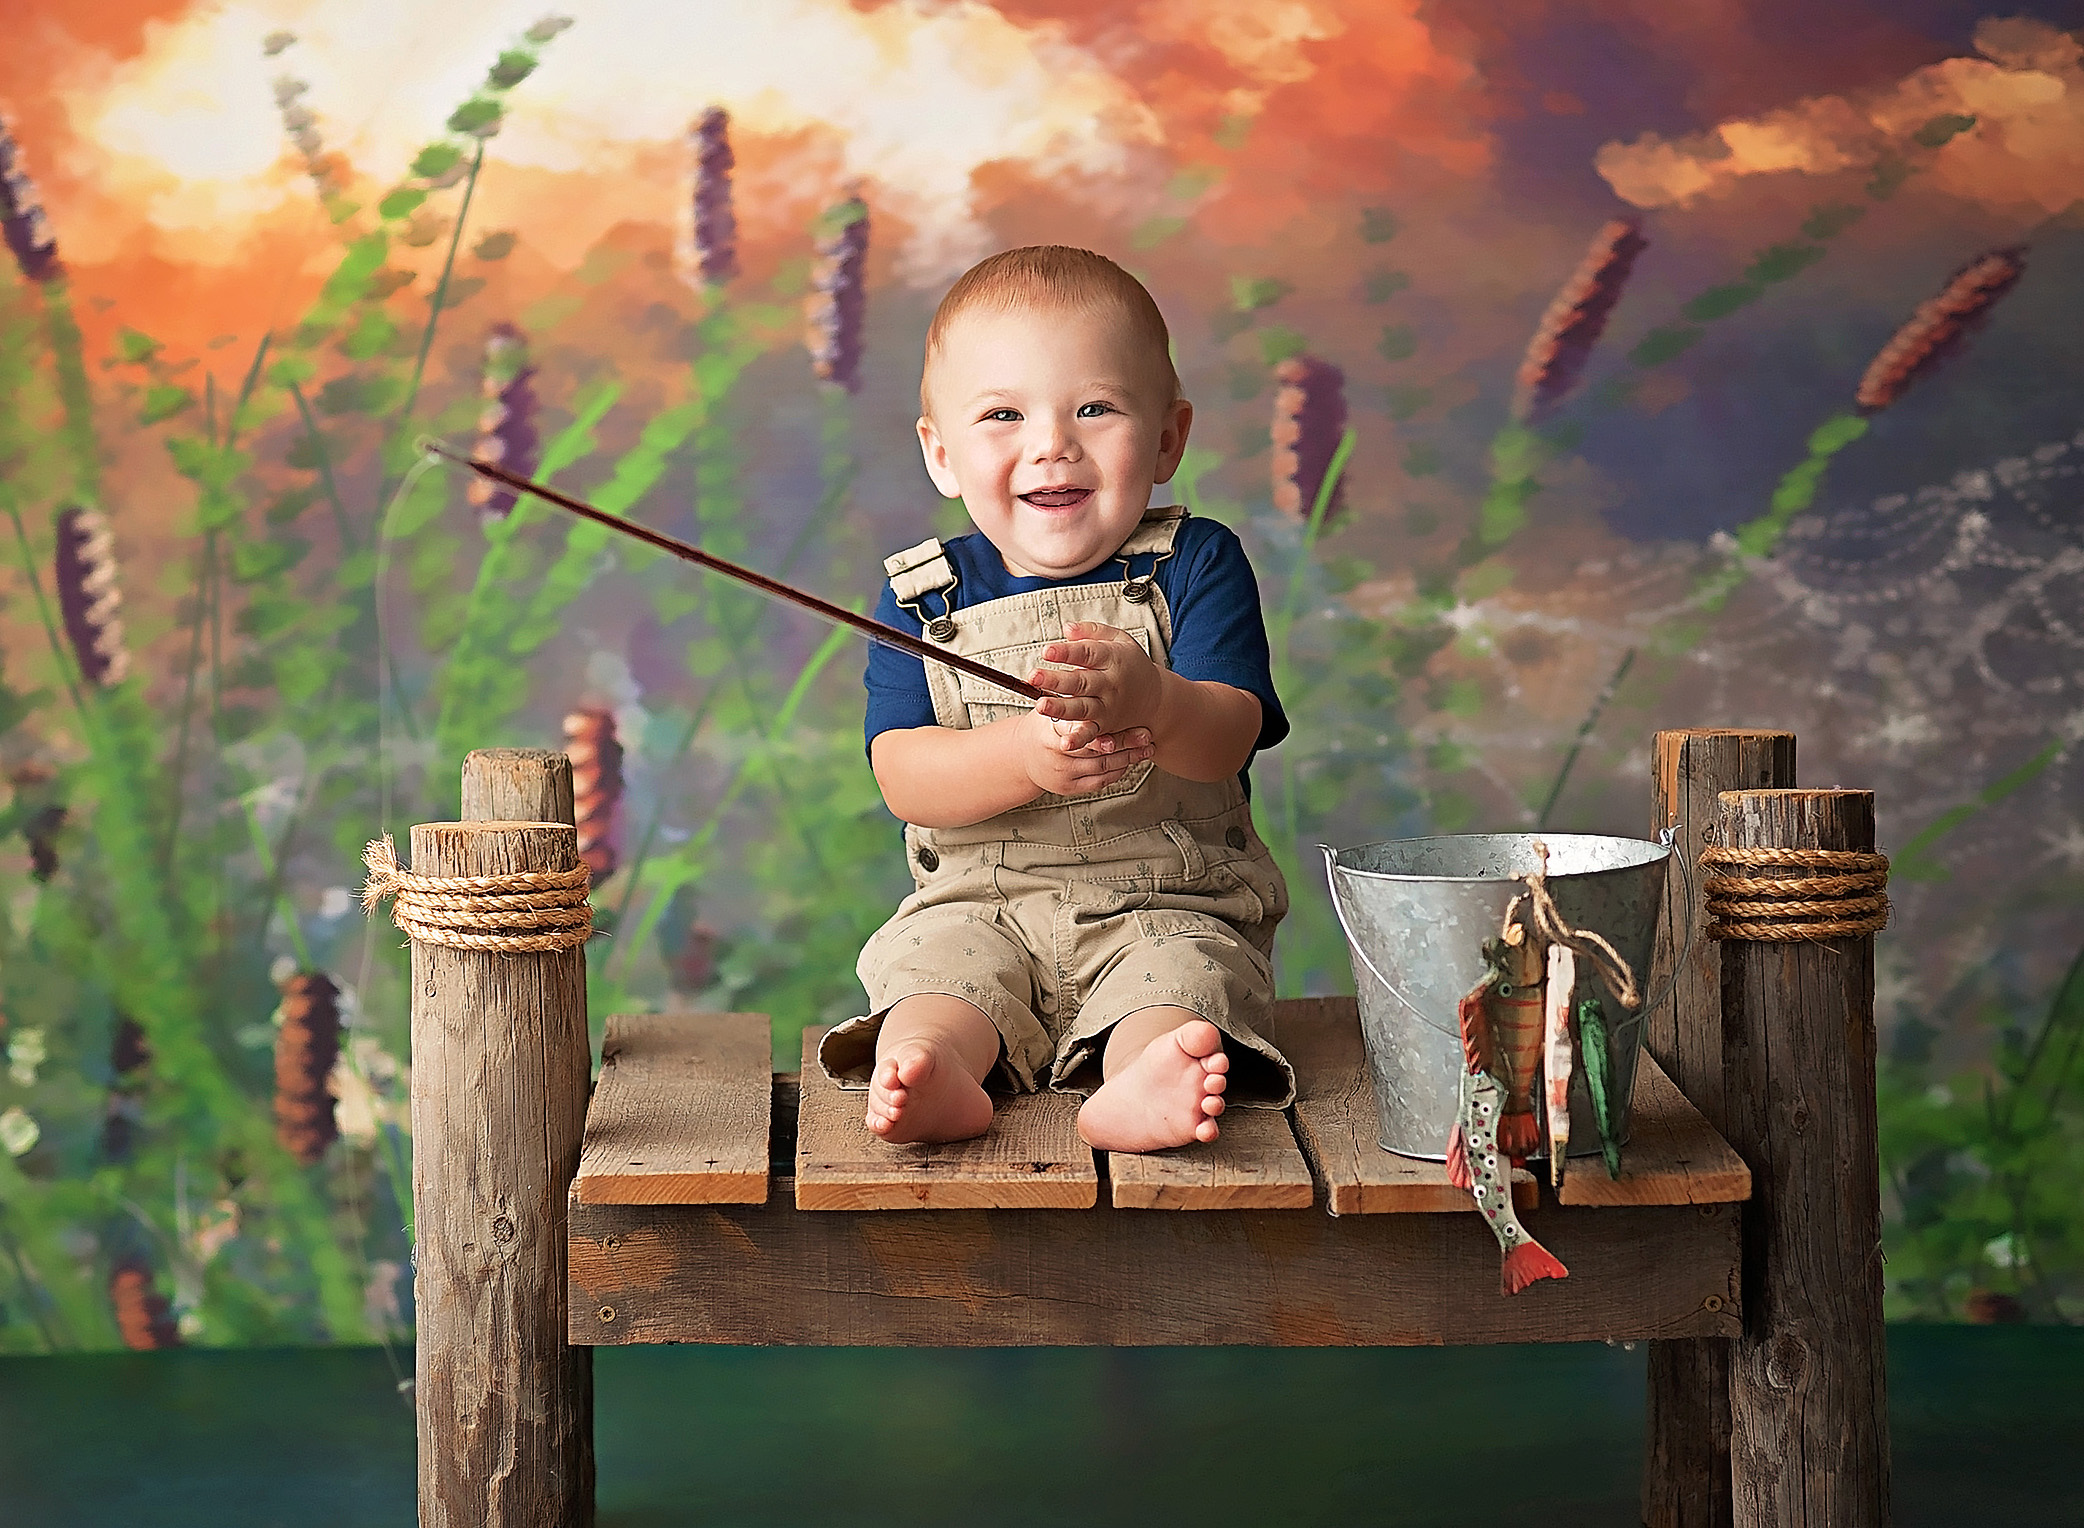 baby boy in overalls with fishing pole